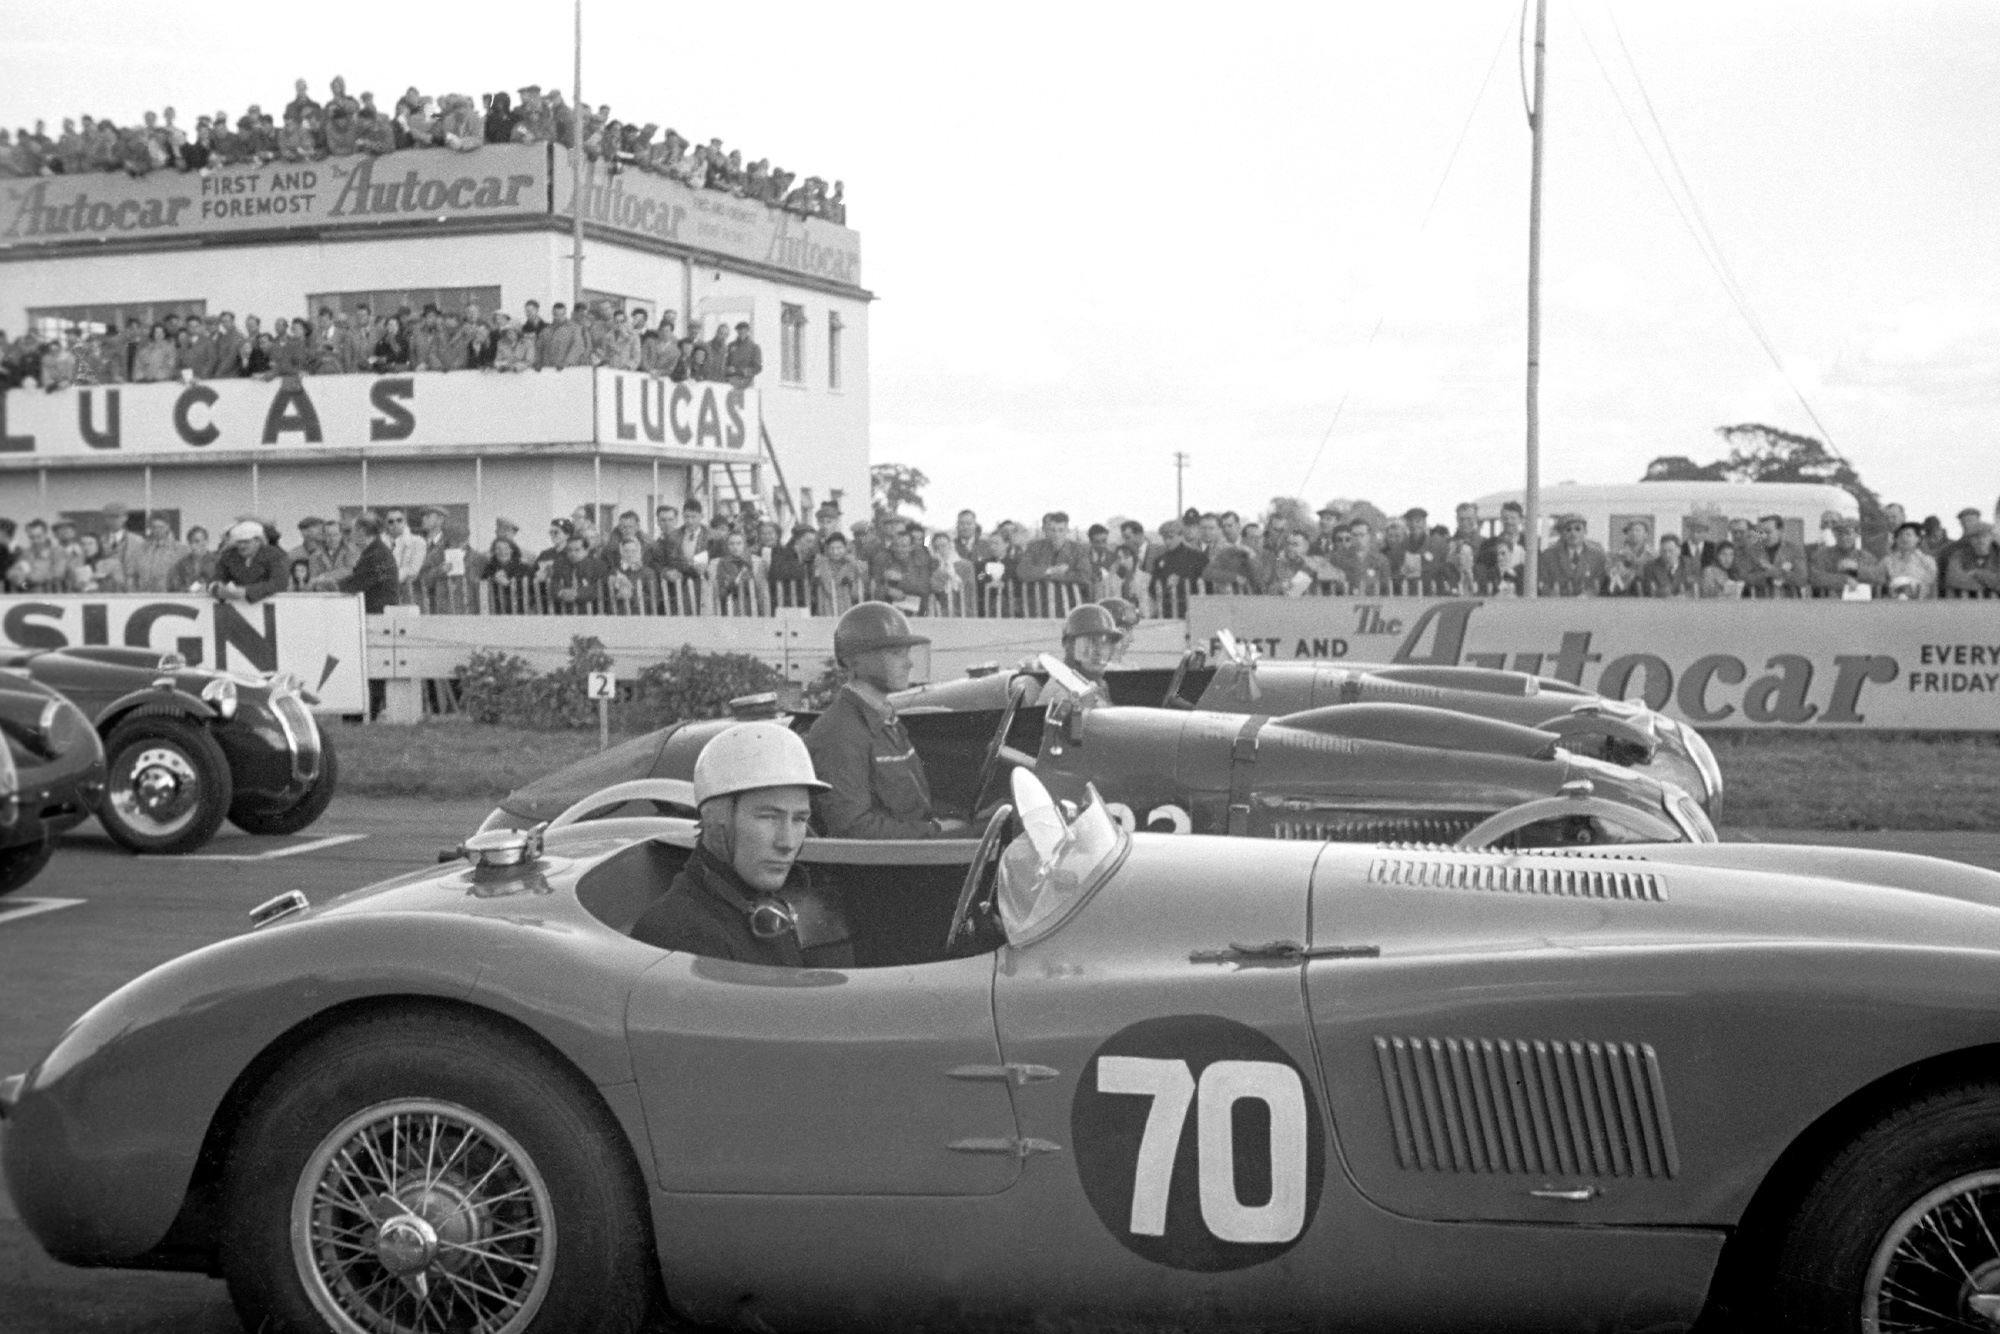 Stirling Moss at the start of the 1951 Goodwood Sports Car Race